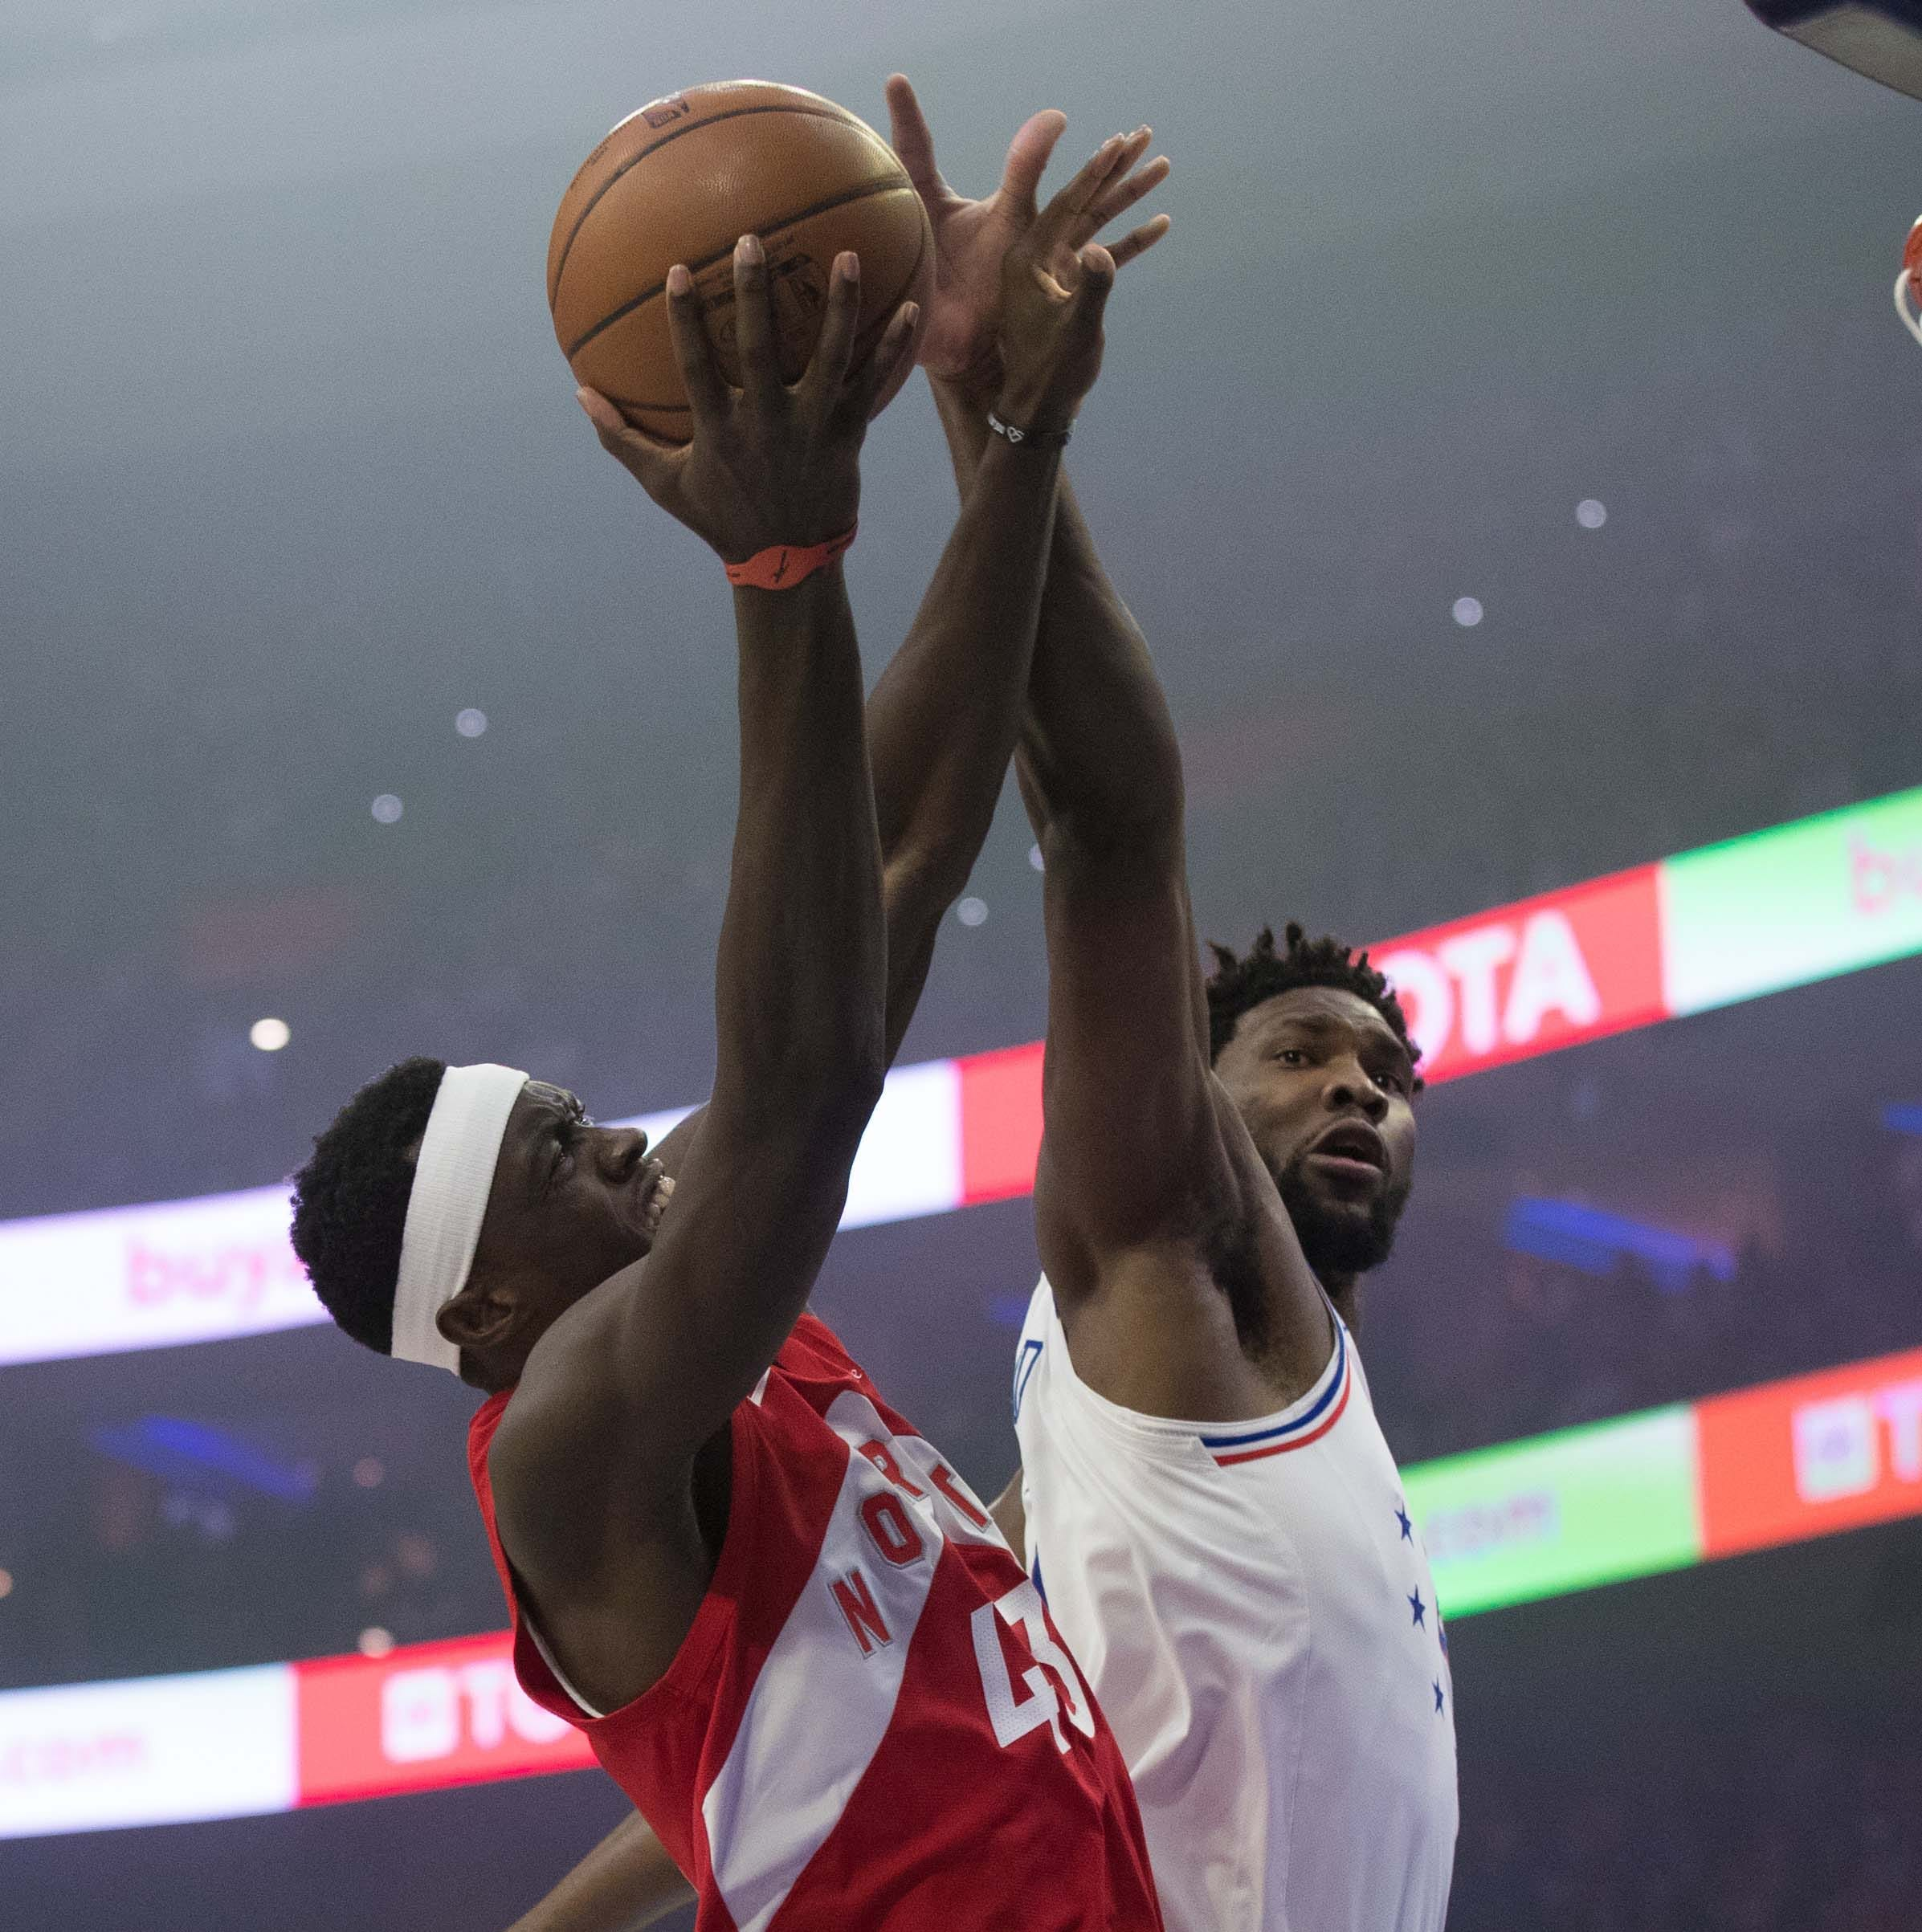 With Joel Embiid sick, Jimmy Butler can't save Sixers, who fall to Kawhi Leonard, Raptors